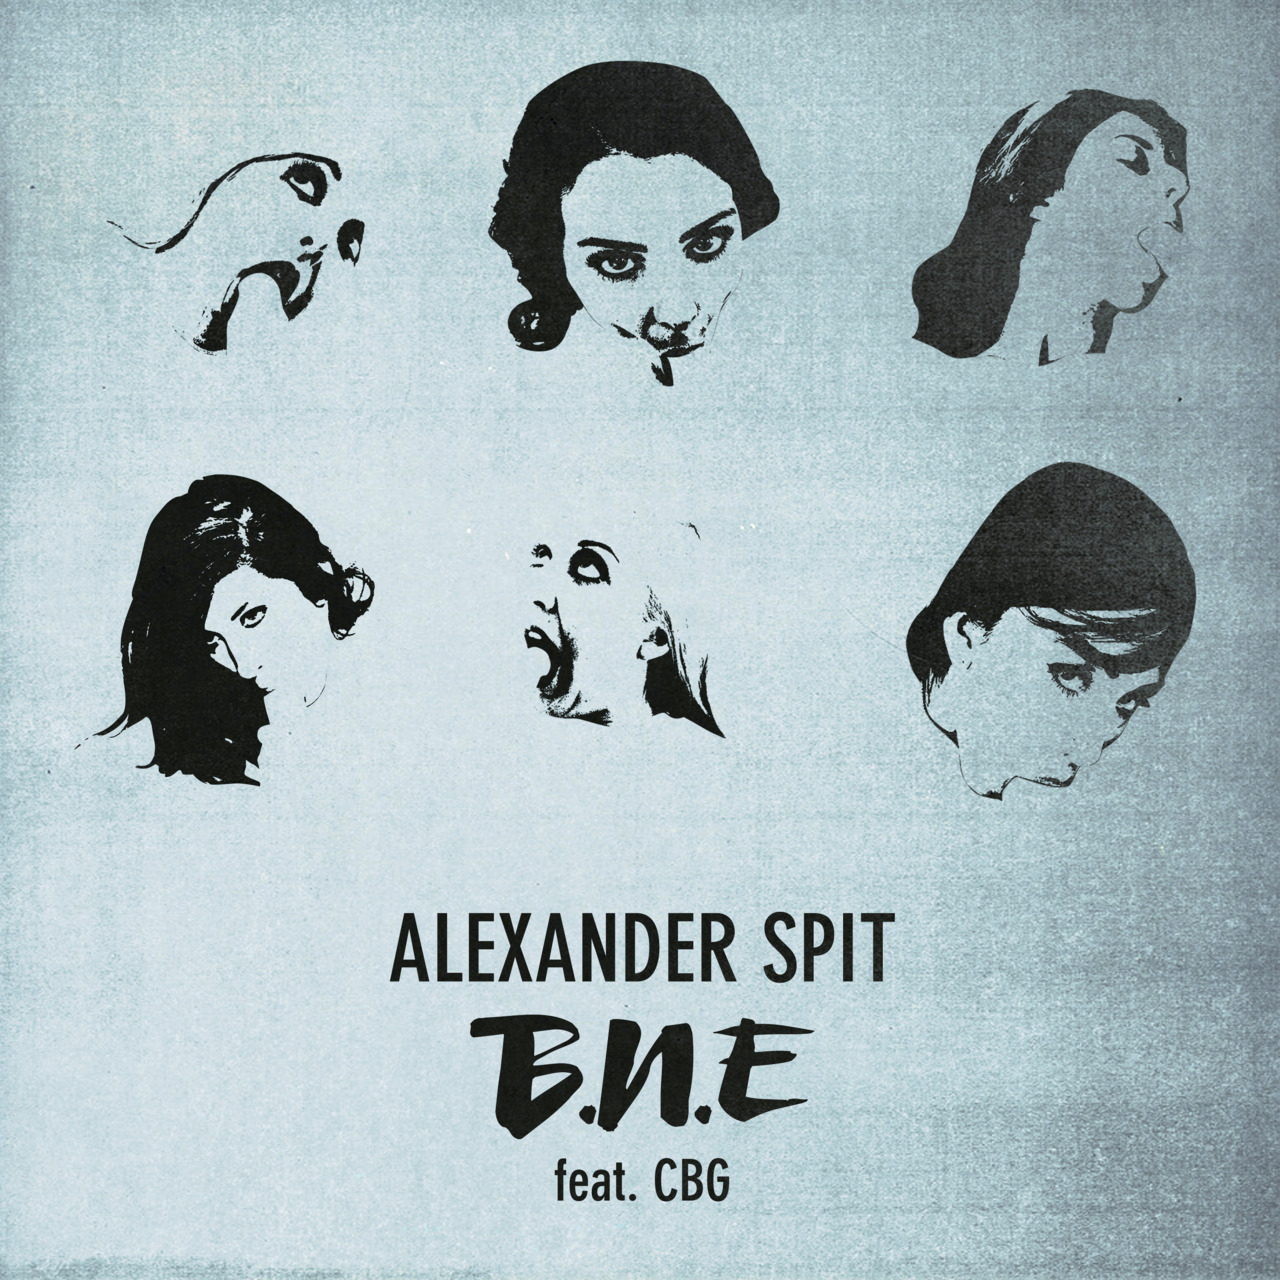 ALEXANDER SPIT B.N.E. feat. CBG CLICK ARTWORK TO DOWNLOAD